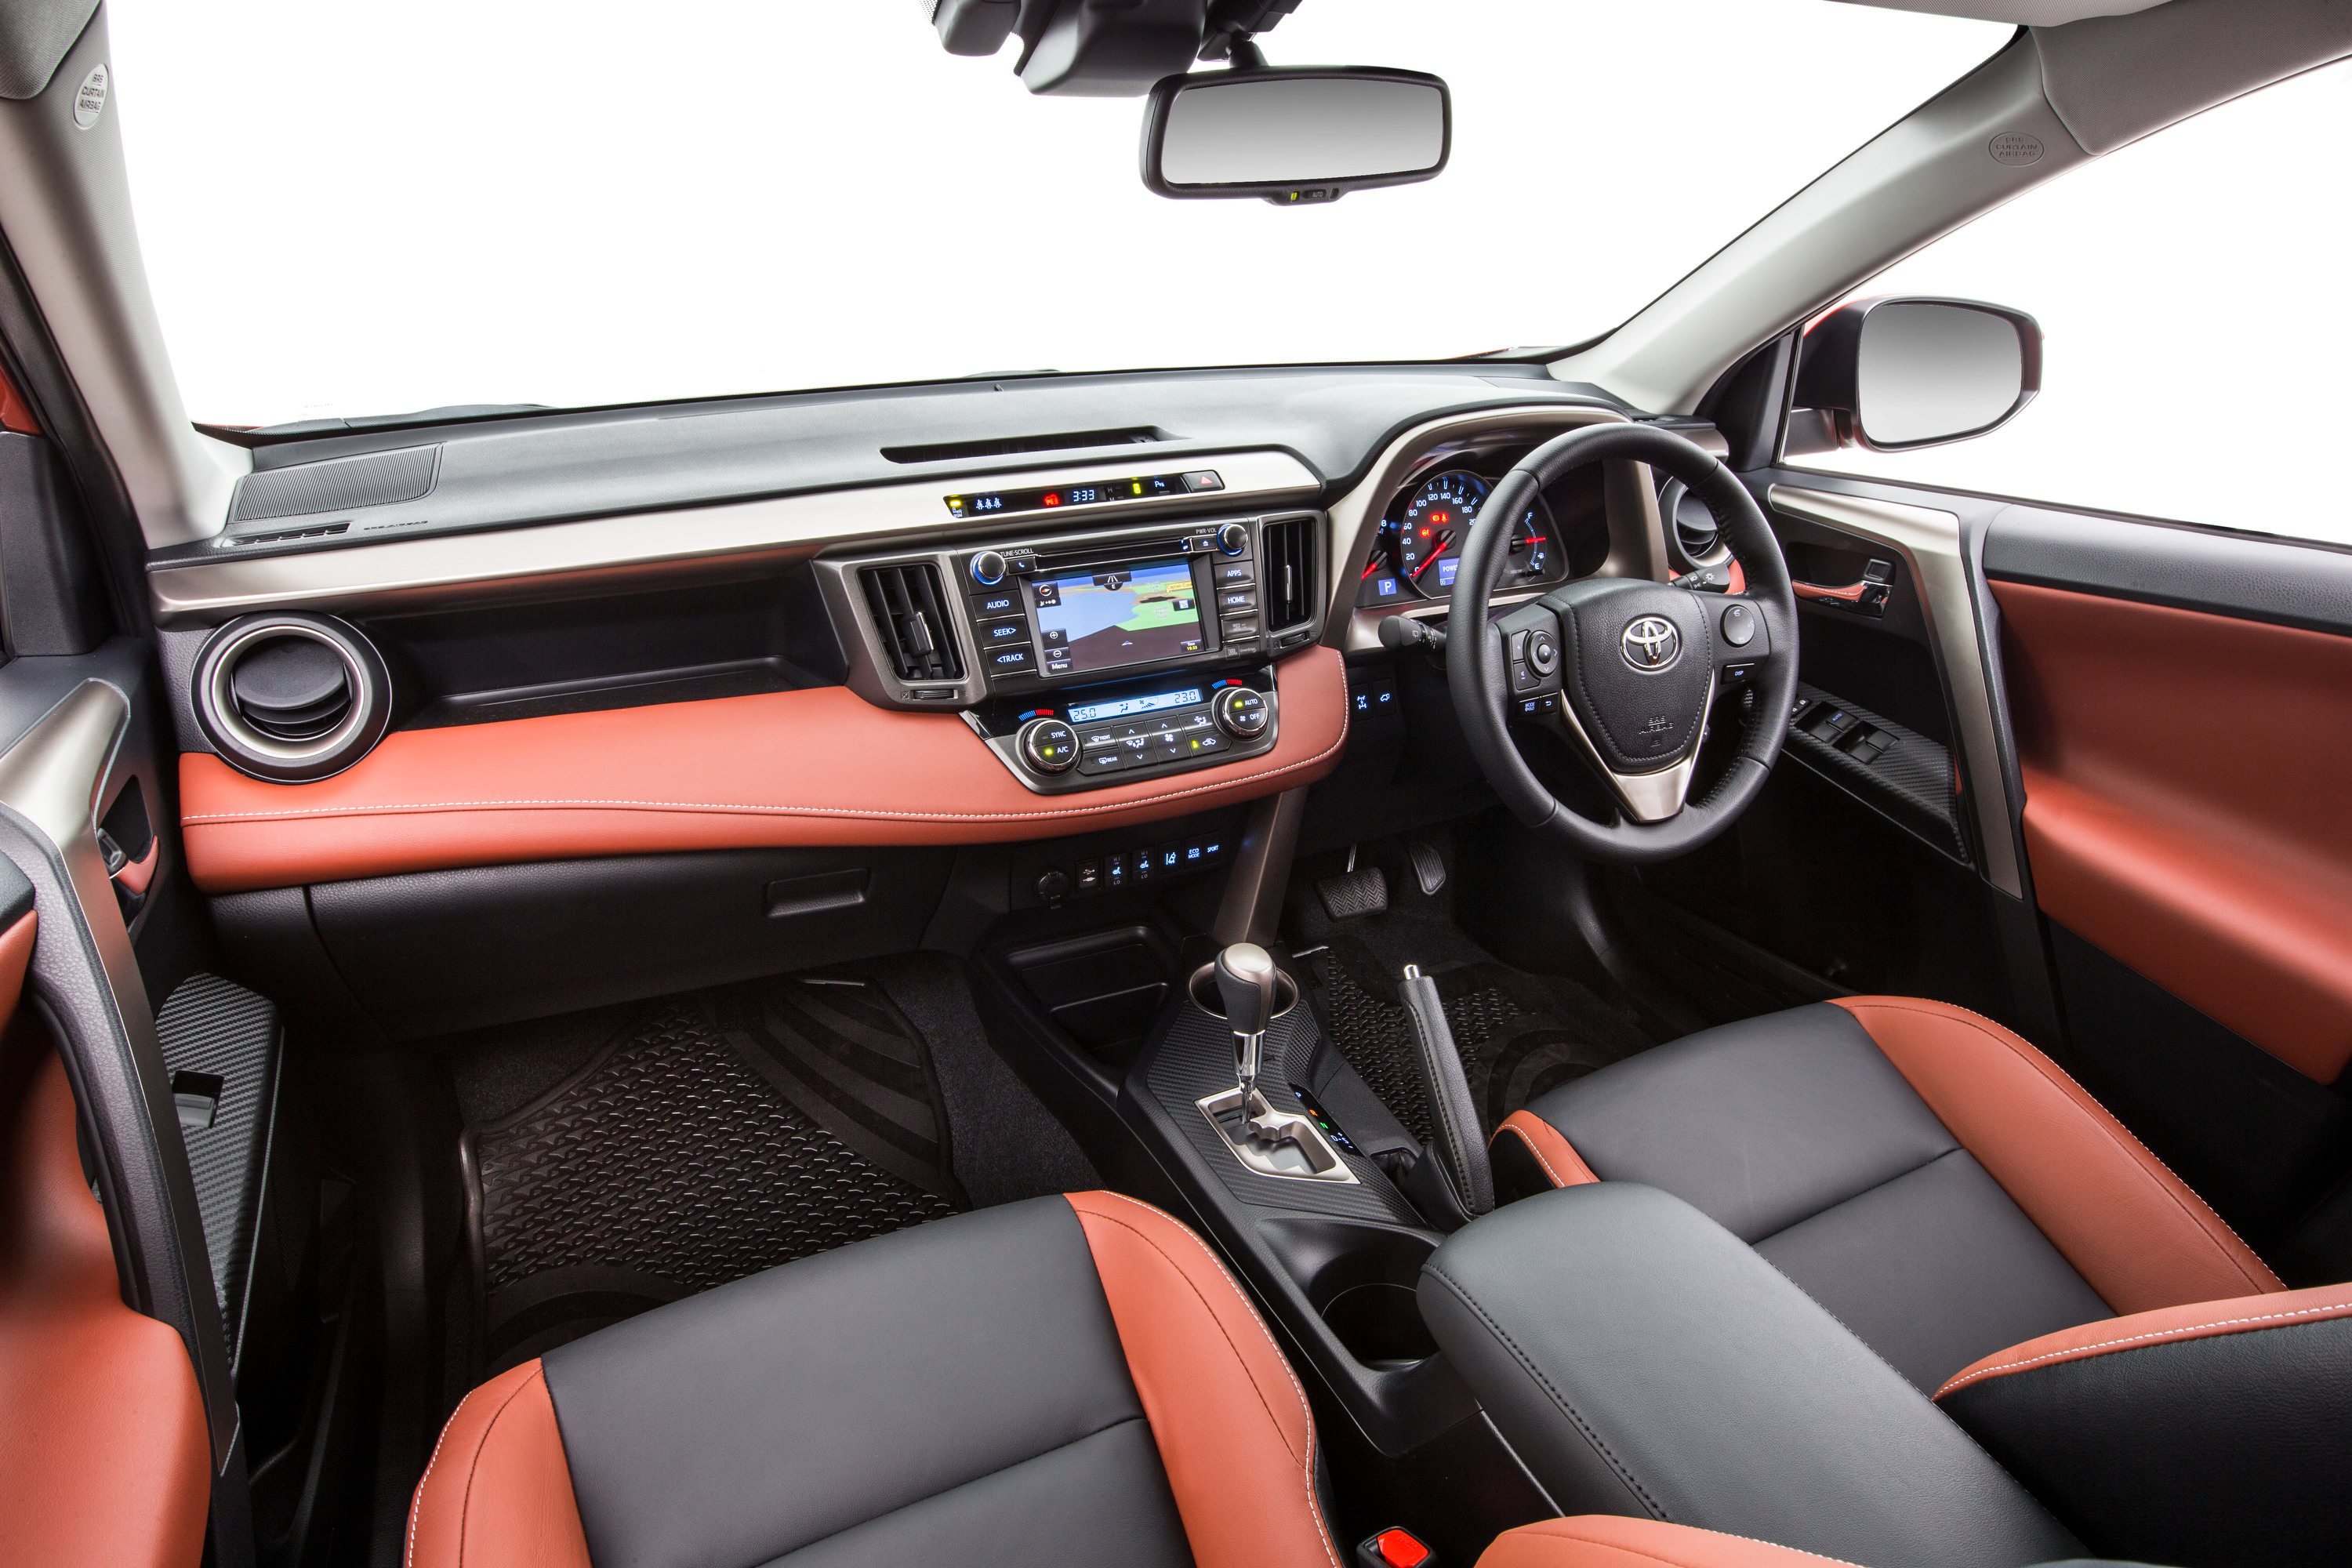 Toyota Rav4 Interior >> Toyota RAV4 goes red for record - photos | CarAdvice